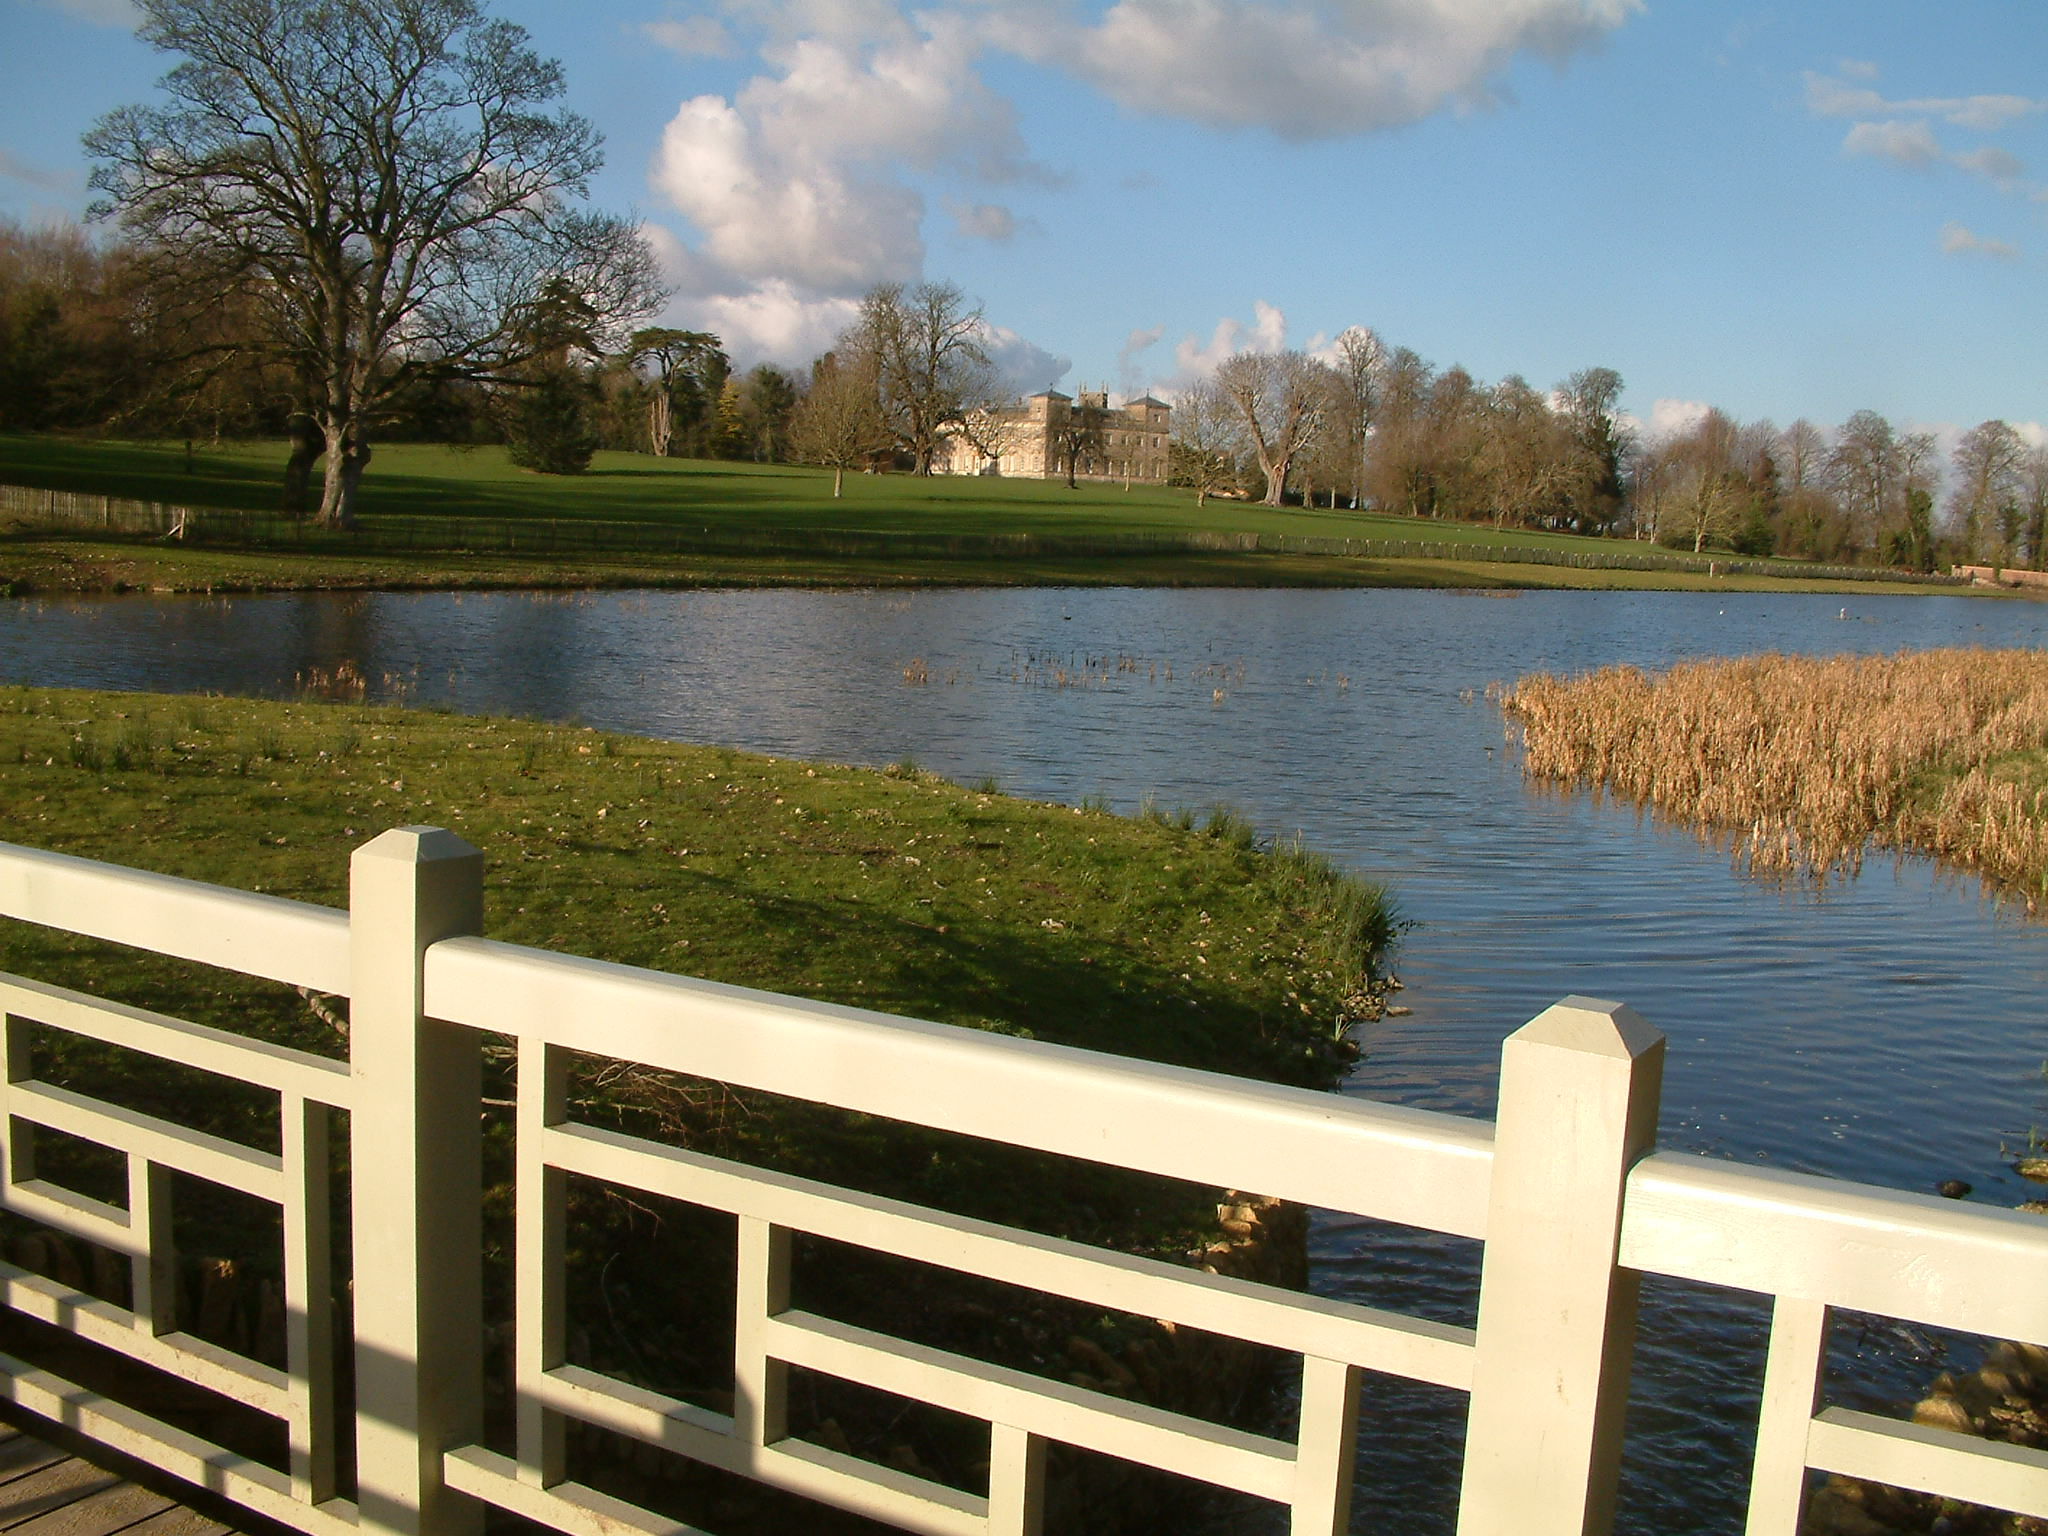 View across the lake in Lydiard Park, Swindon